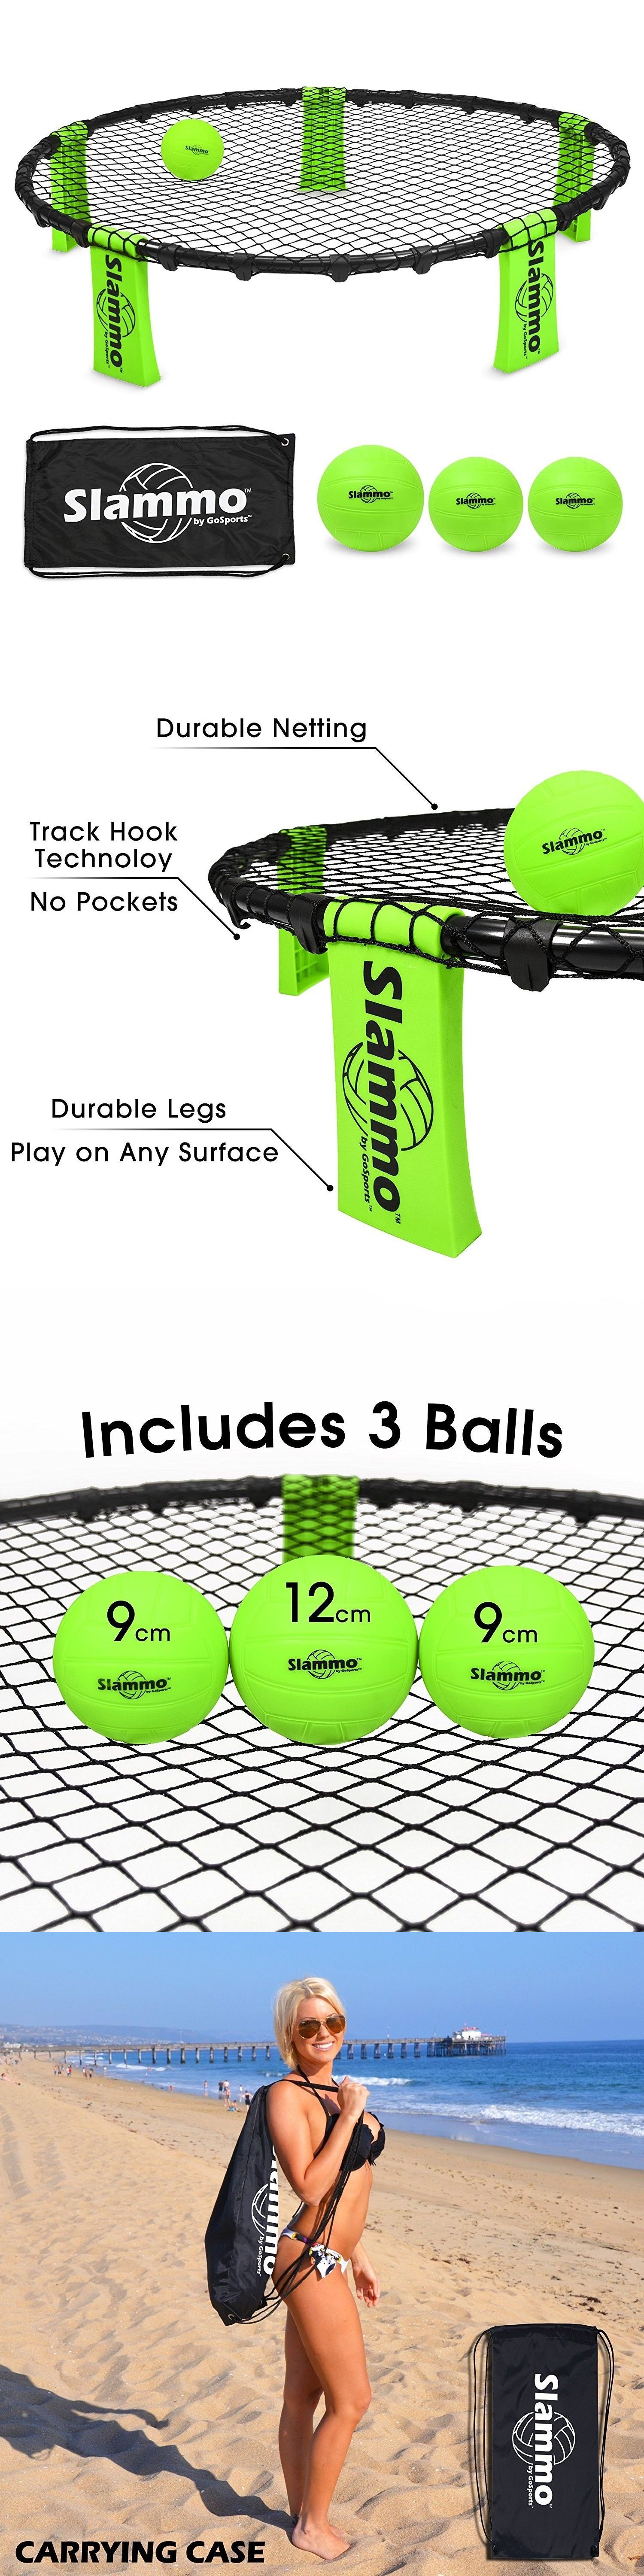 Bocce Ball 79788 Gosports Slammo Set Includes 3 Carrying Case And Rules It Now Only 44 99 On Ebay